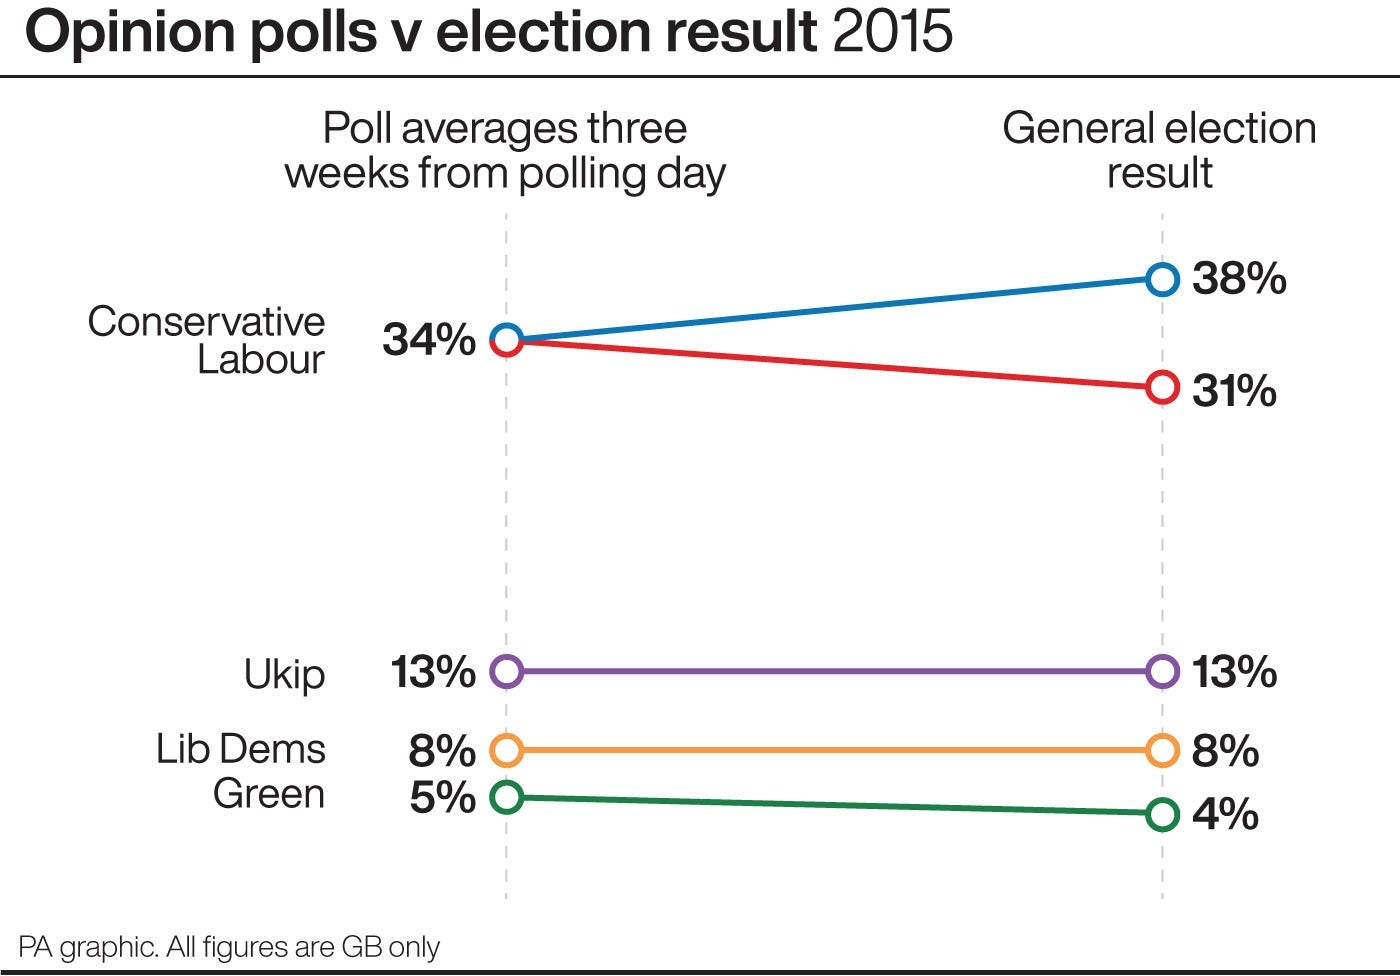 Opinion polls (three weeks to go) v election result 2015